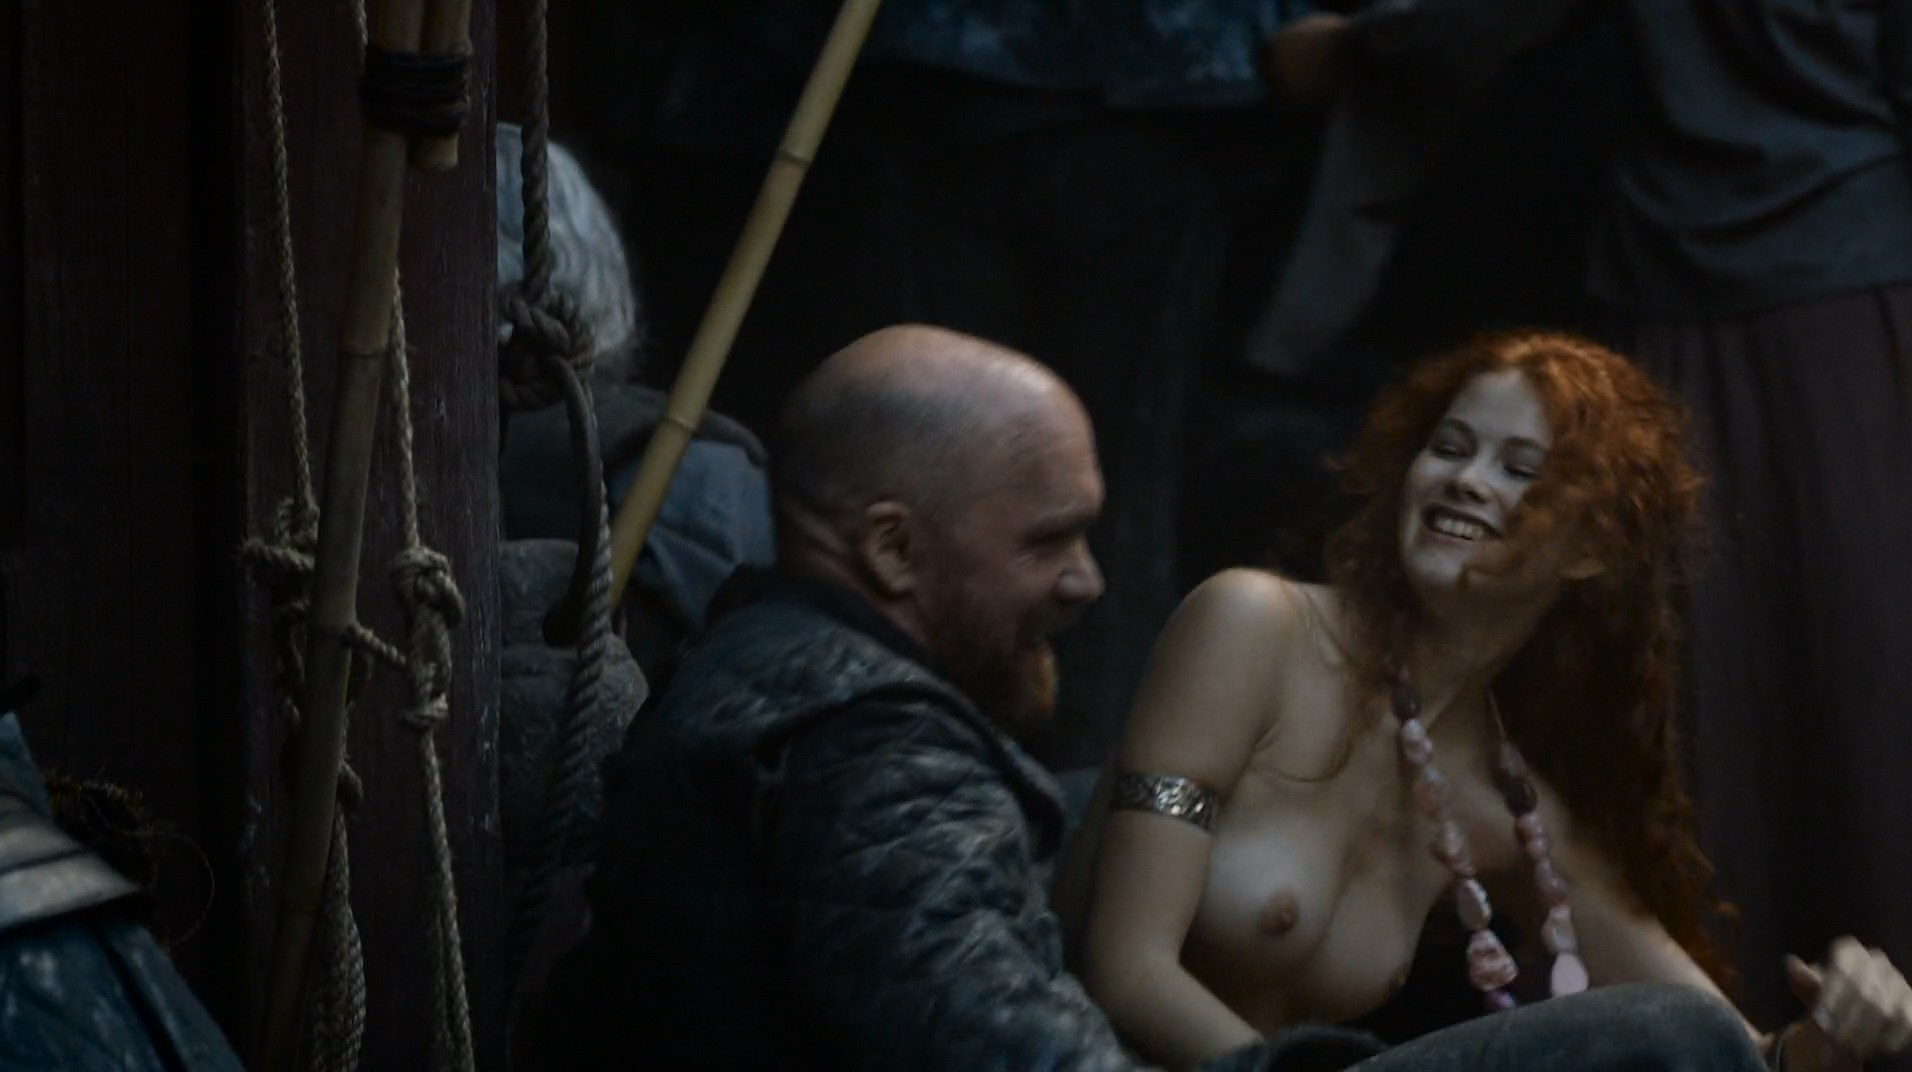 0313175944402_02_Heidi-Romanova-nude-bobs-Ella-Hughes-nude-and-others-nude-too-Game-of-Thrones-2016-s6e7-HD-1080p-4.jpg